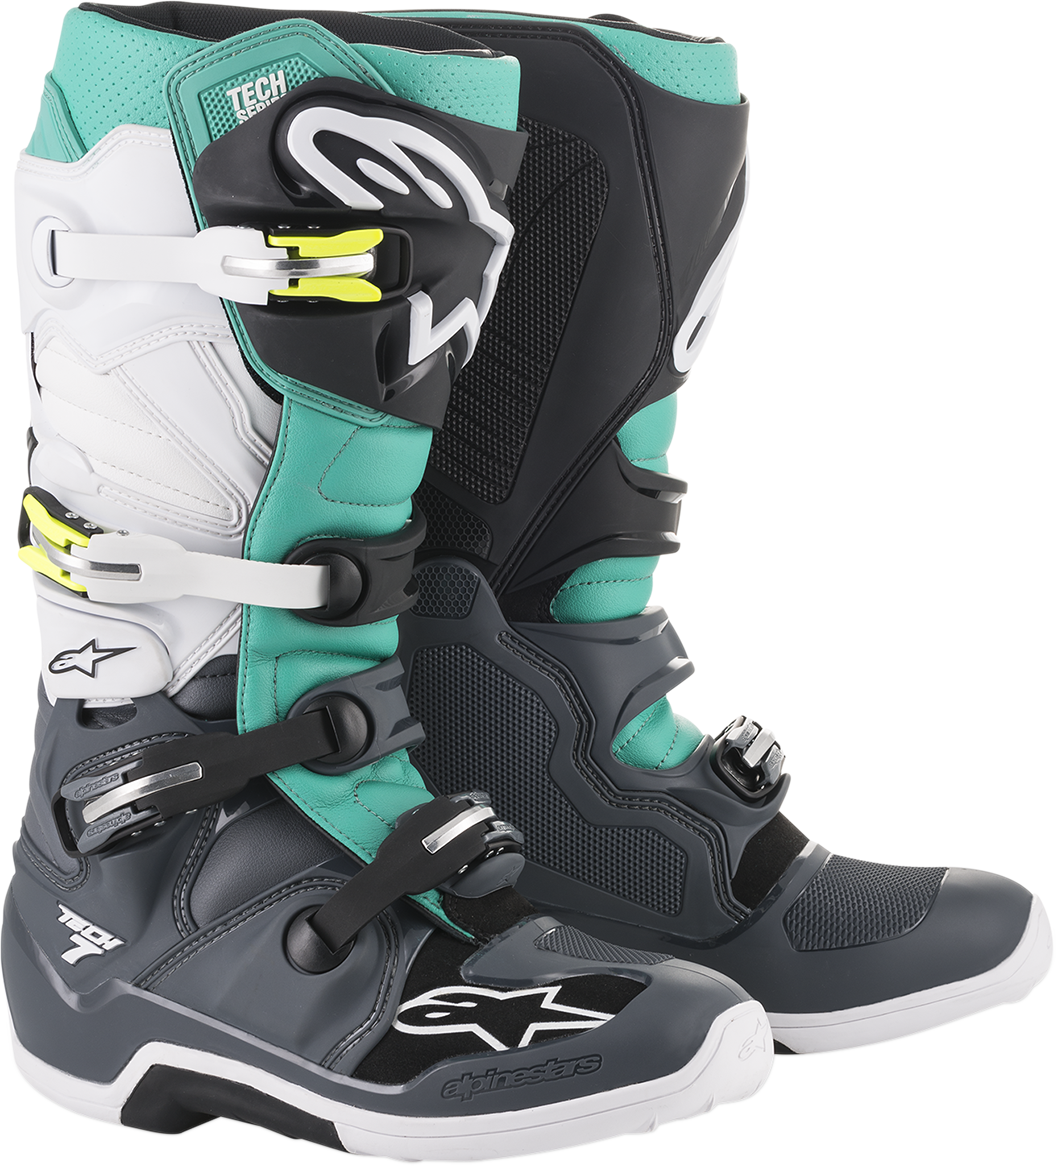 Alpinestars Gray Teal White Tech 7 Off road Riding Dirt Bike Racing Boots